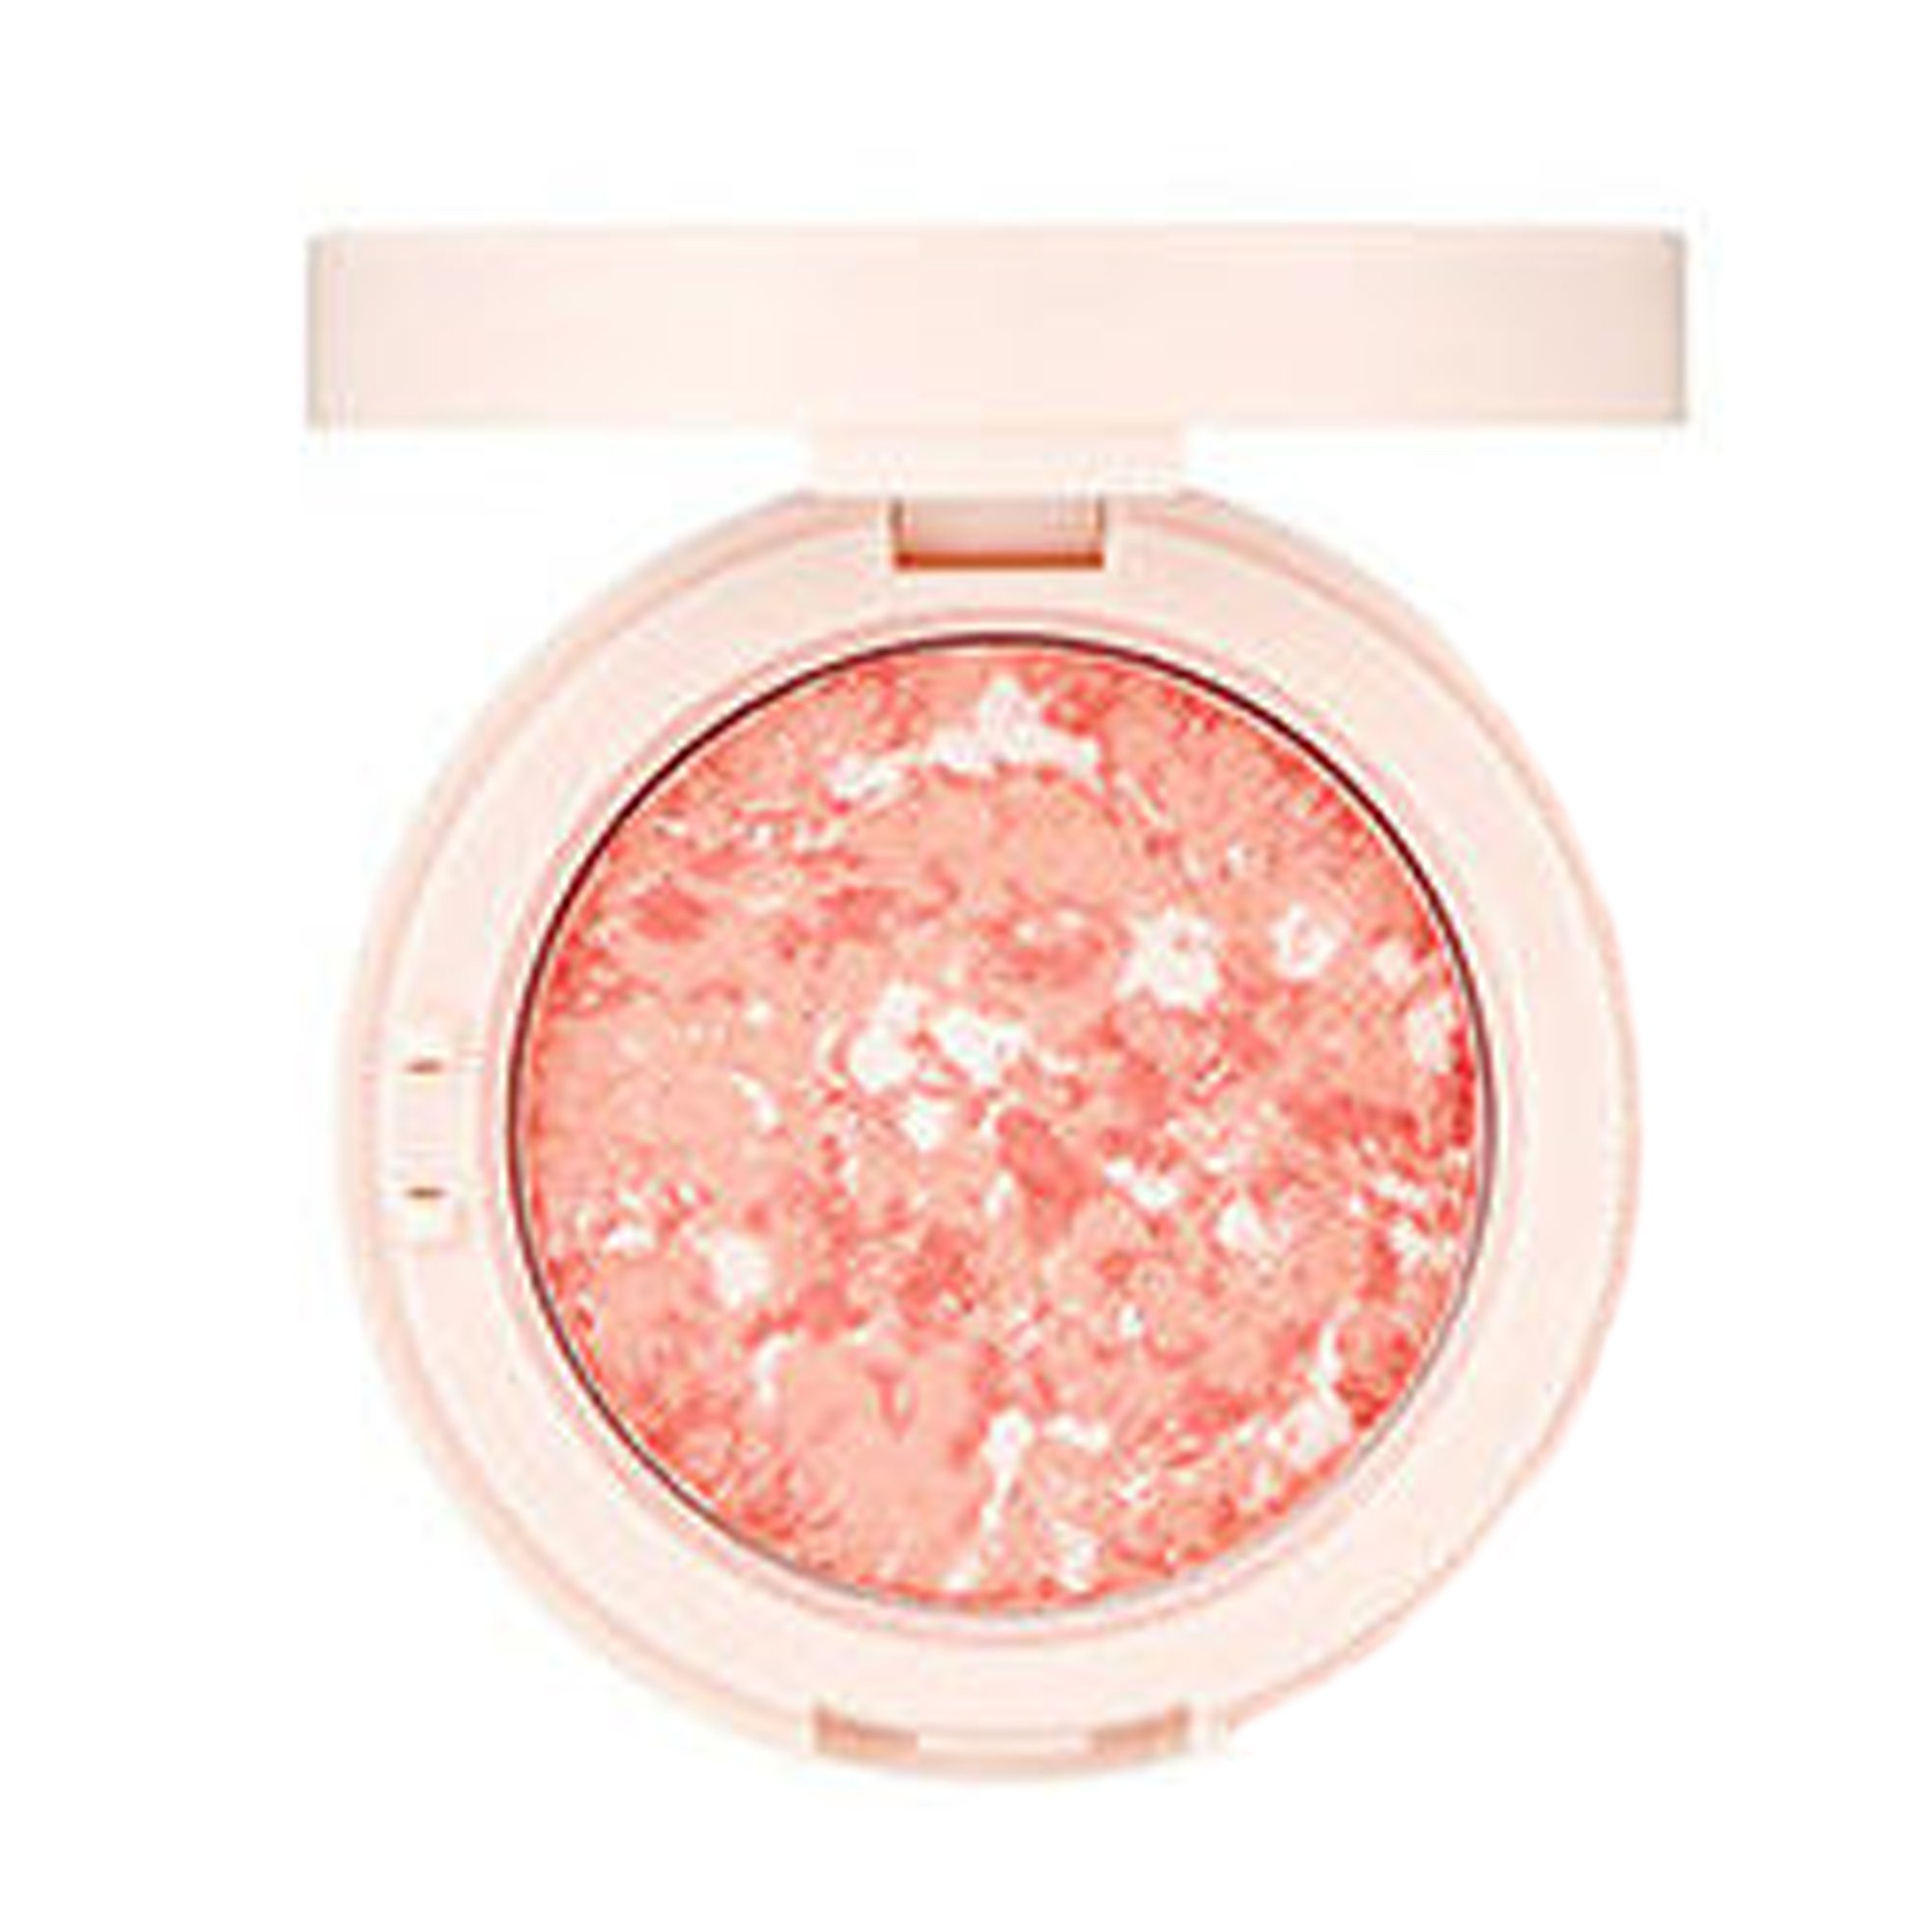 The Face Shop   Marble Beam Blush